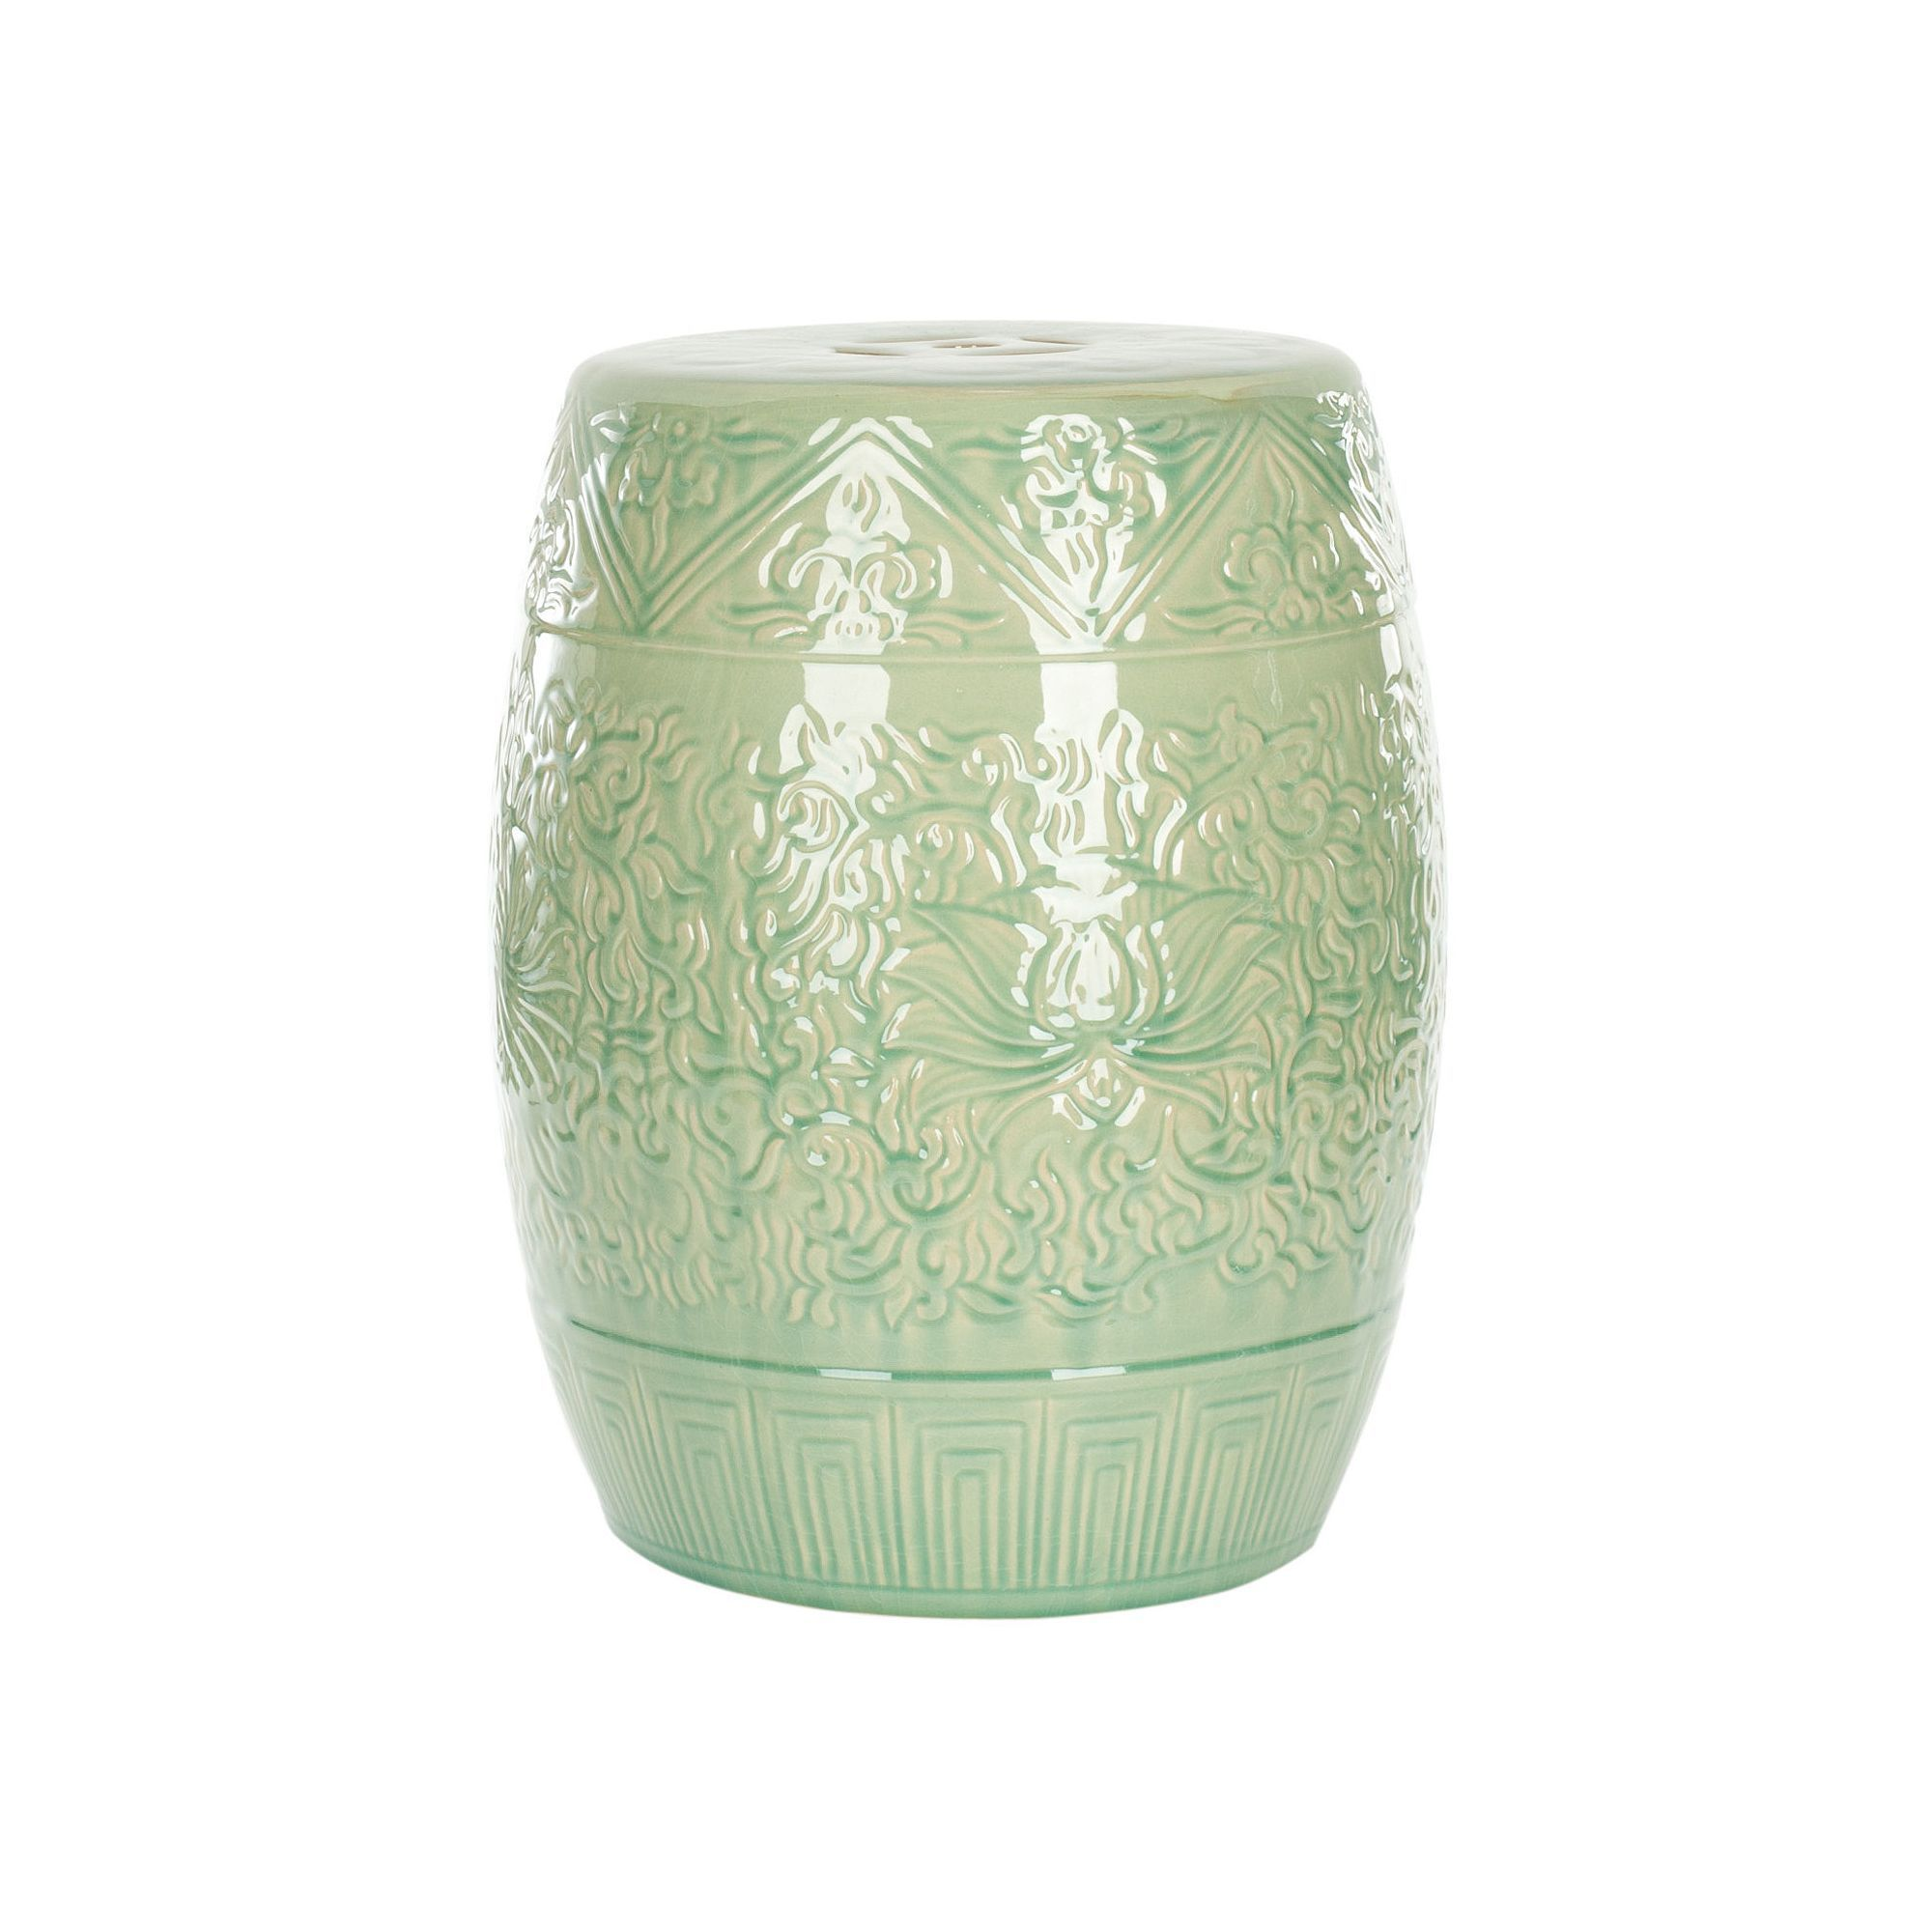 Outdoor Safavieh Lotus Ceramic Garden Stool, Green